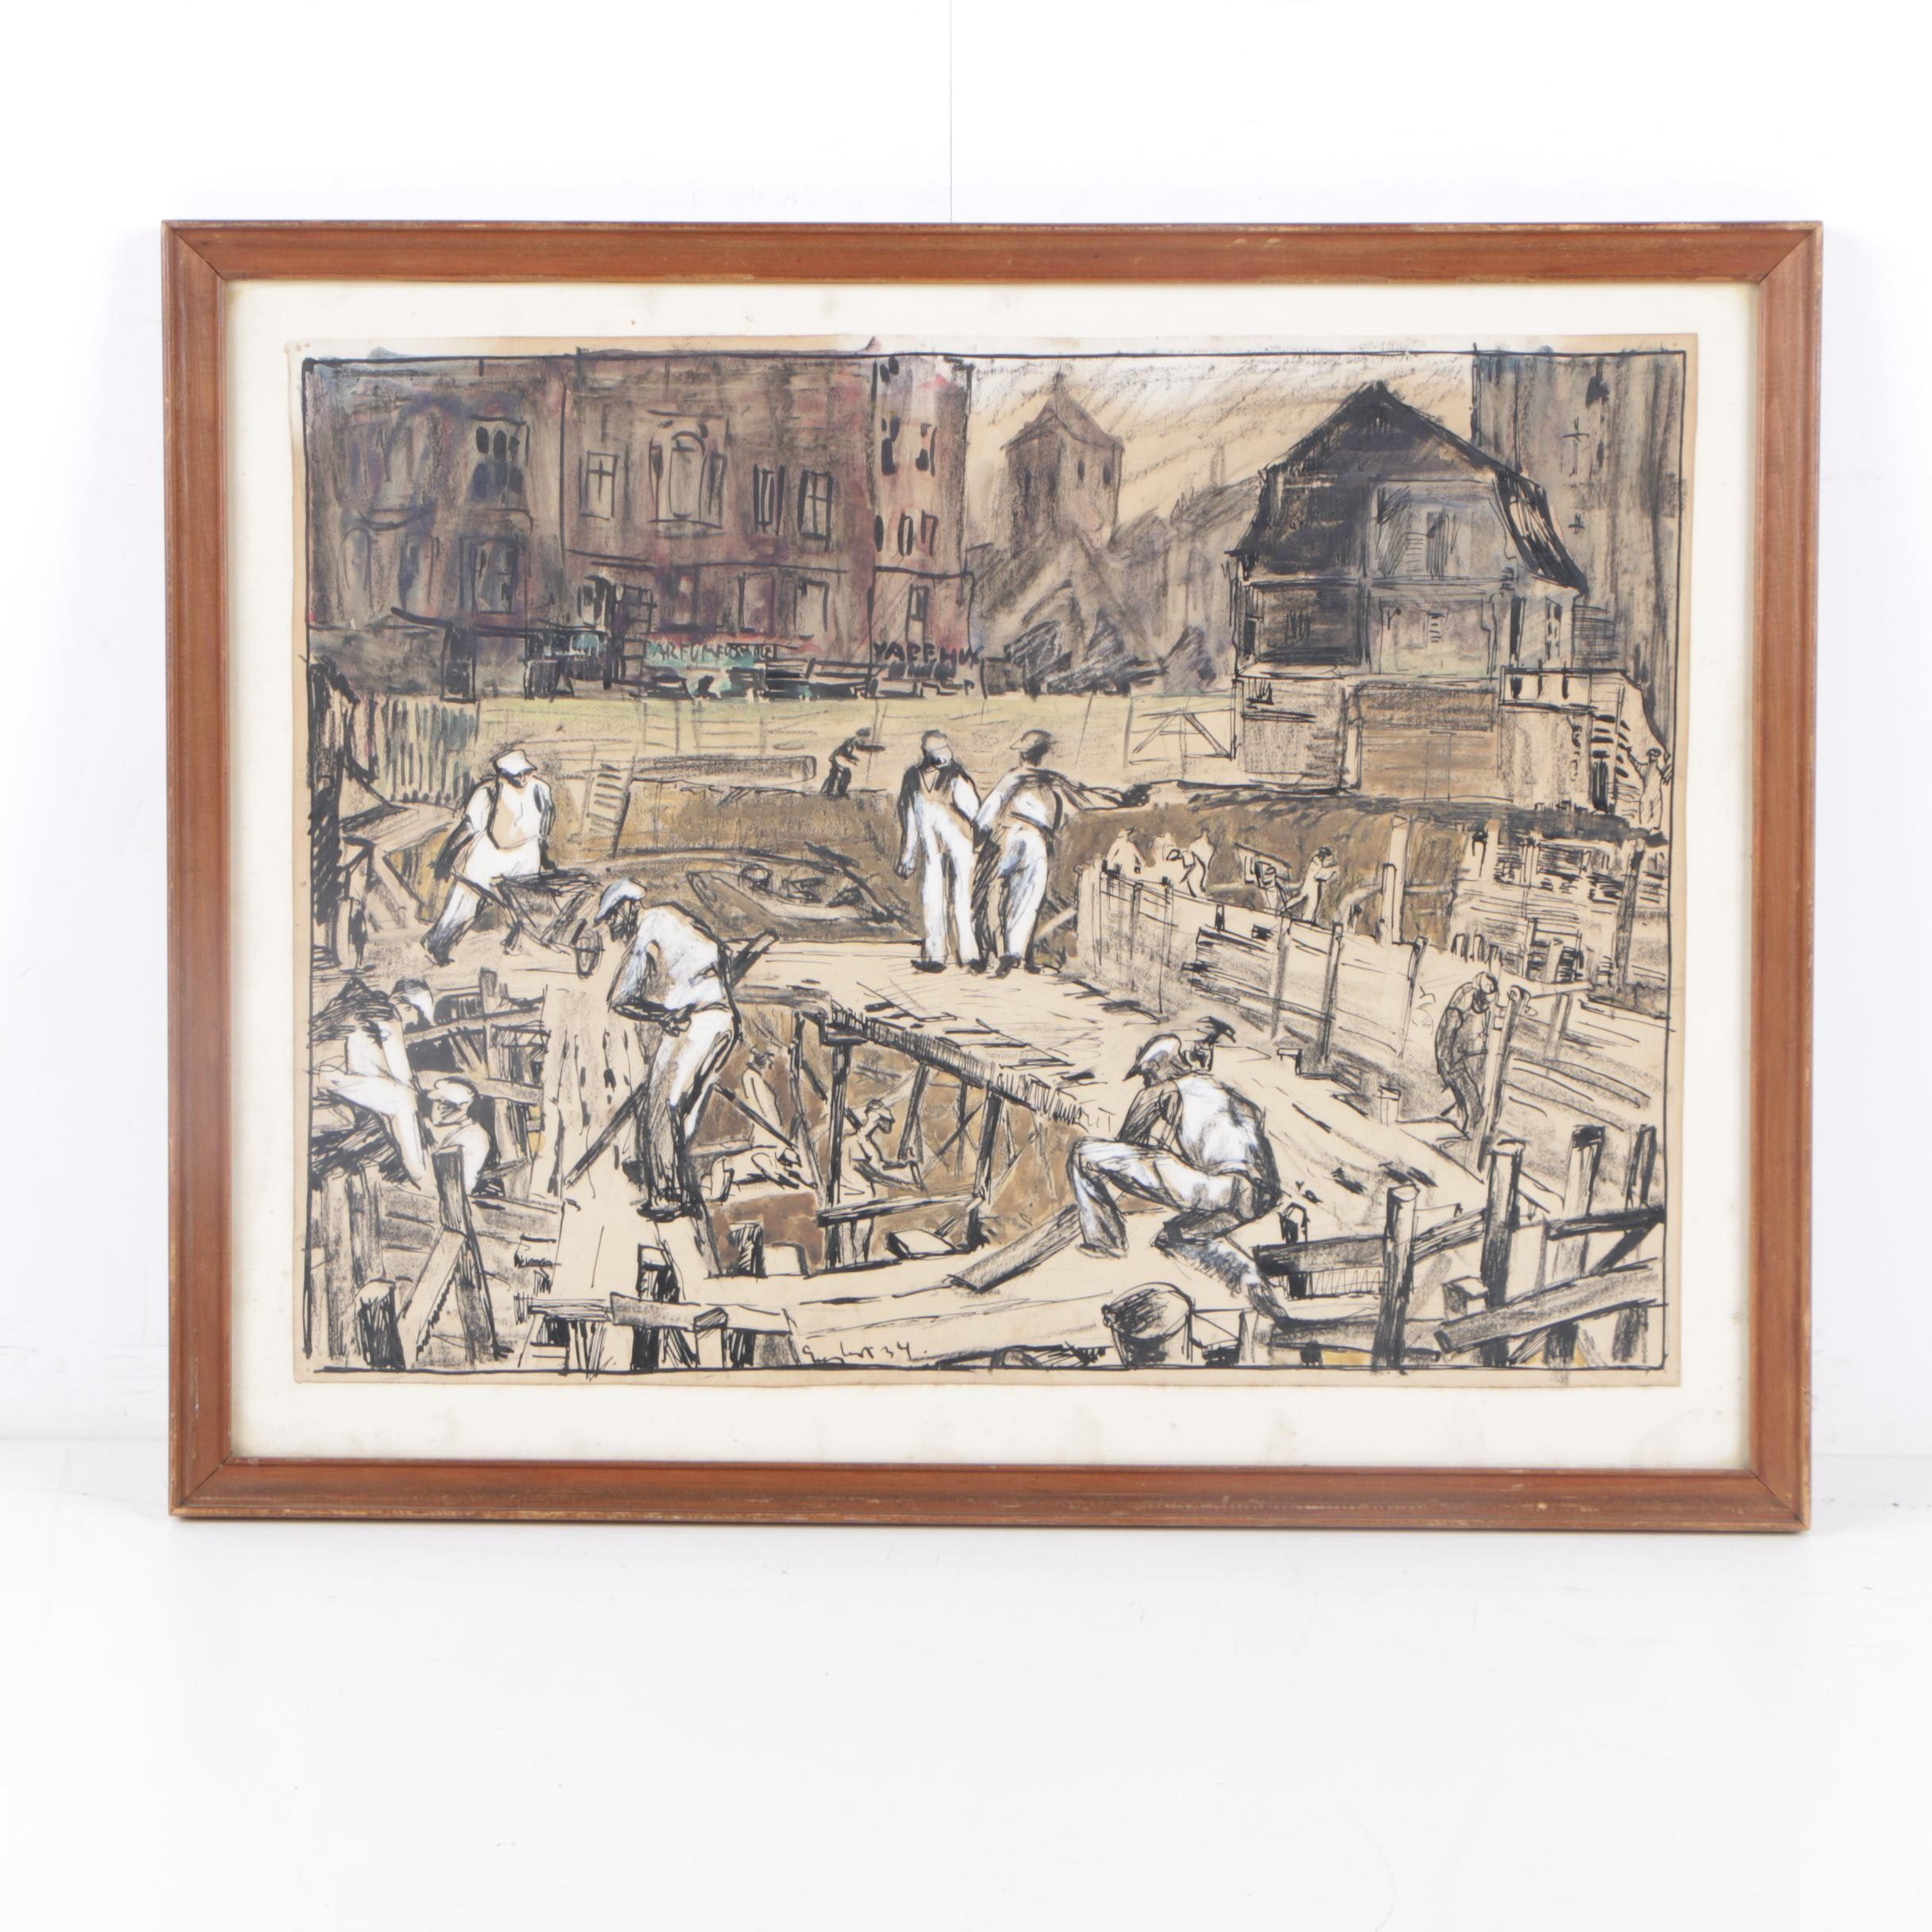 1934 Ink and Gouache Illustration of Construction Workers in Danish City